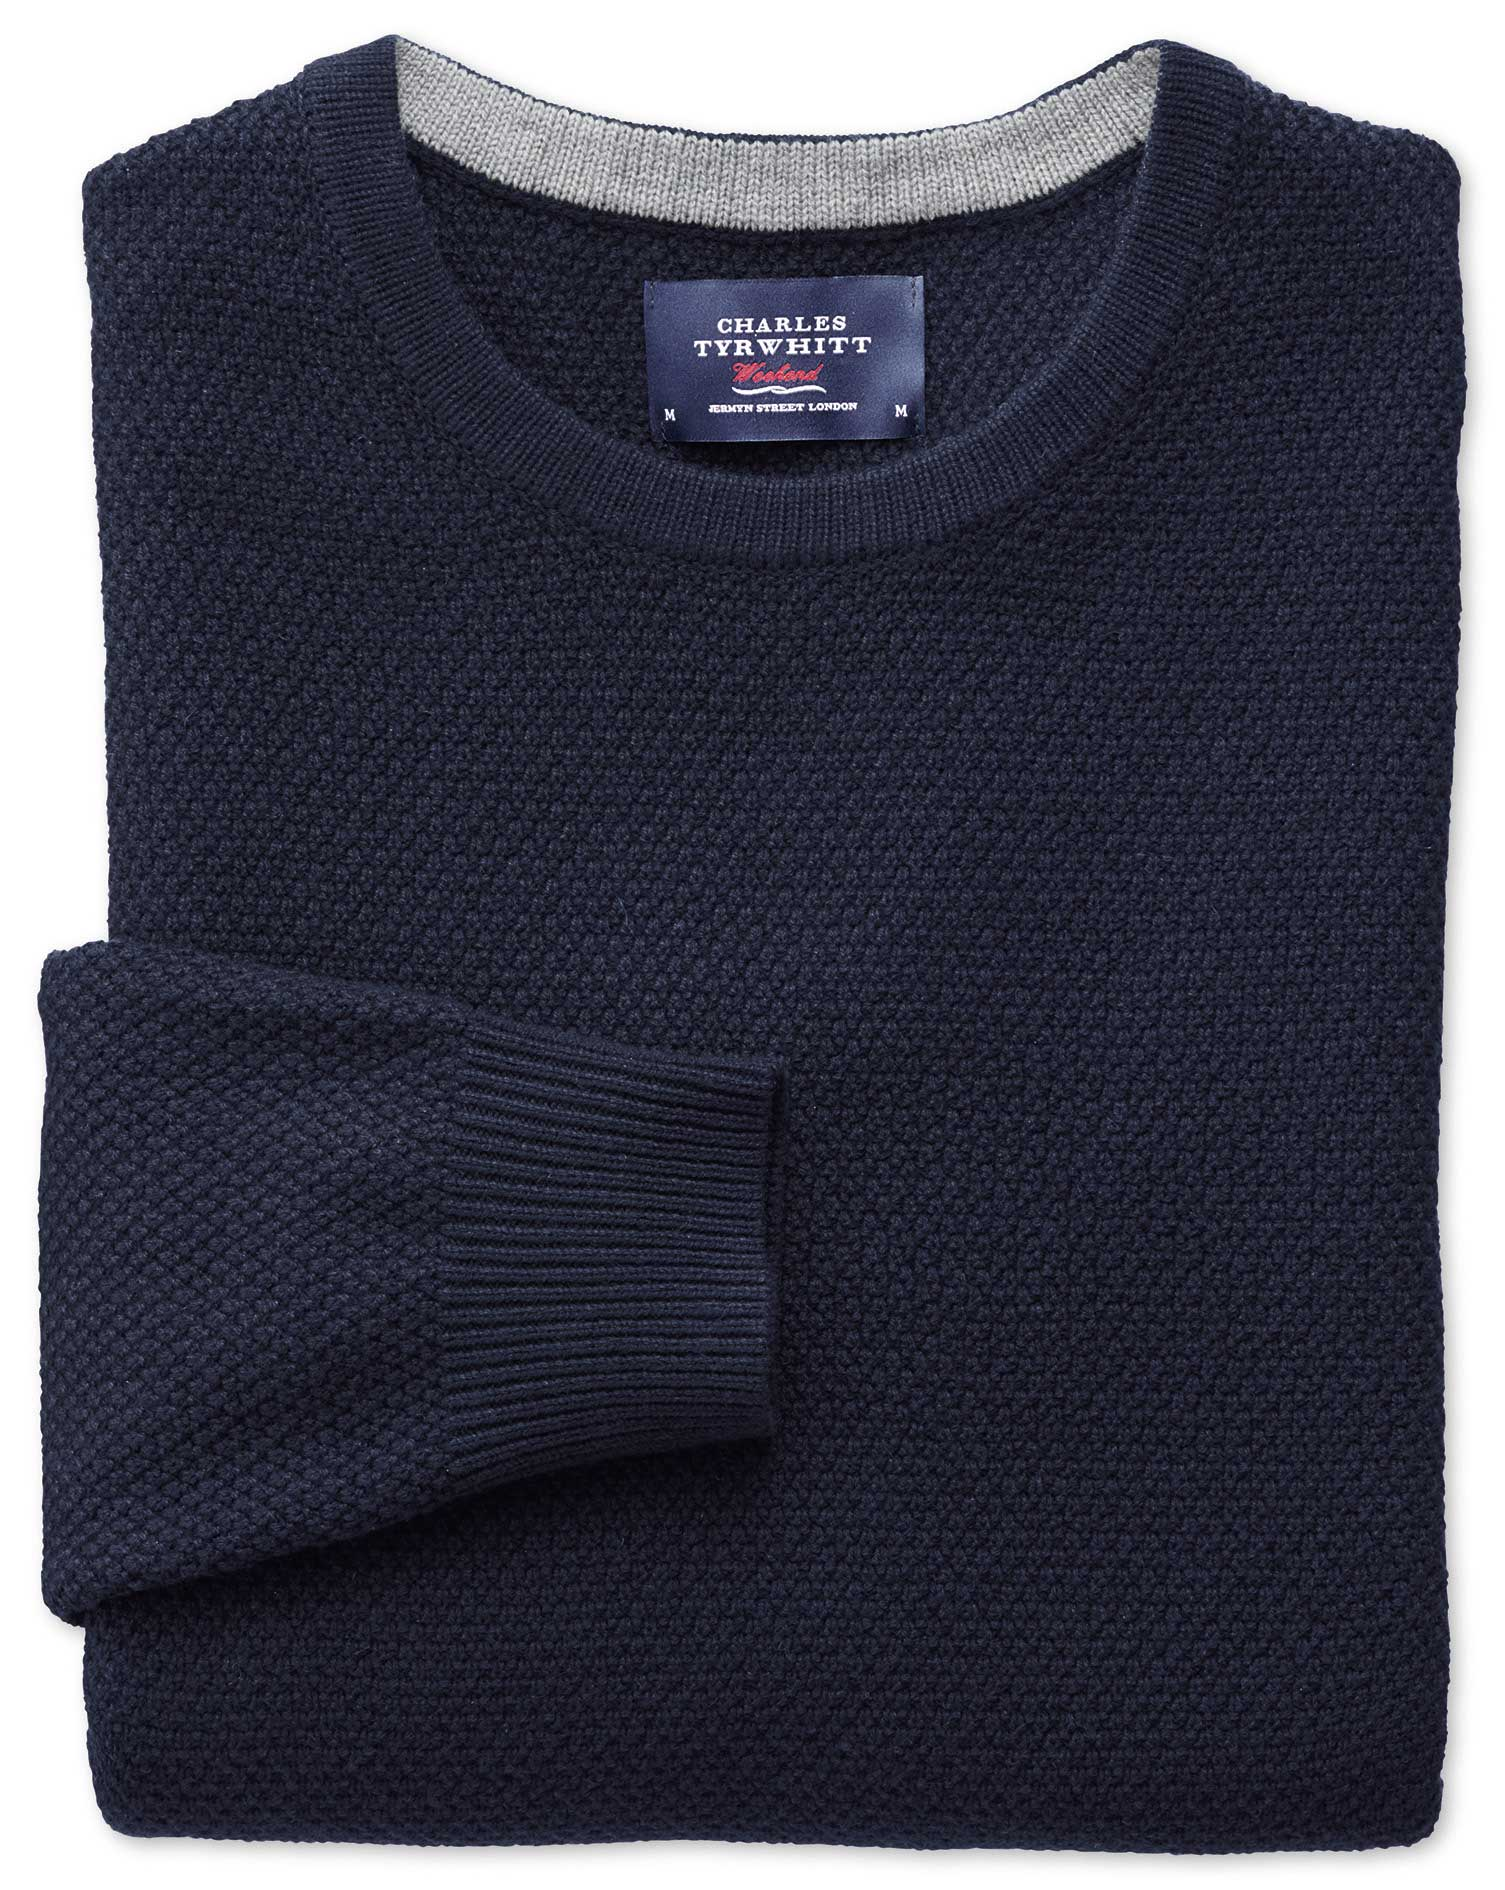 Navy Merino Cotton Crew Neck Wool Jumper Size XL by Charles Tyrwhitt